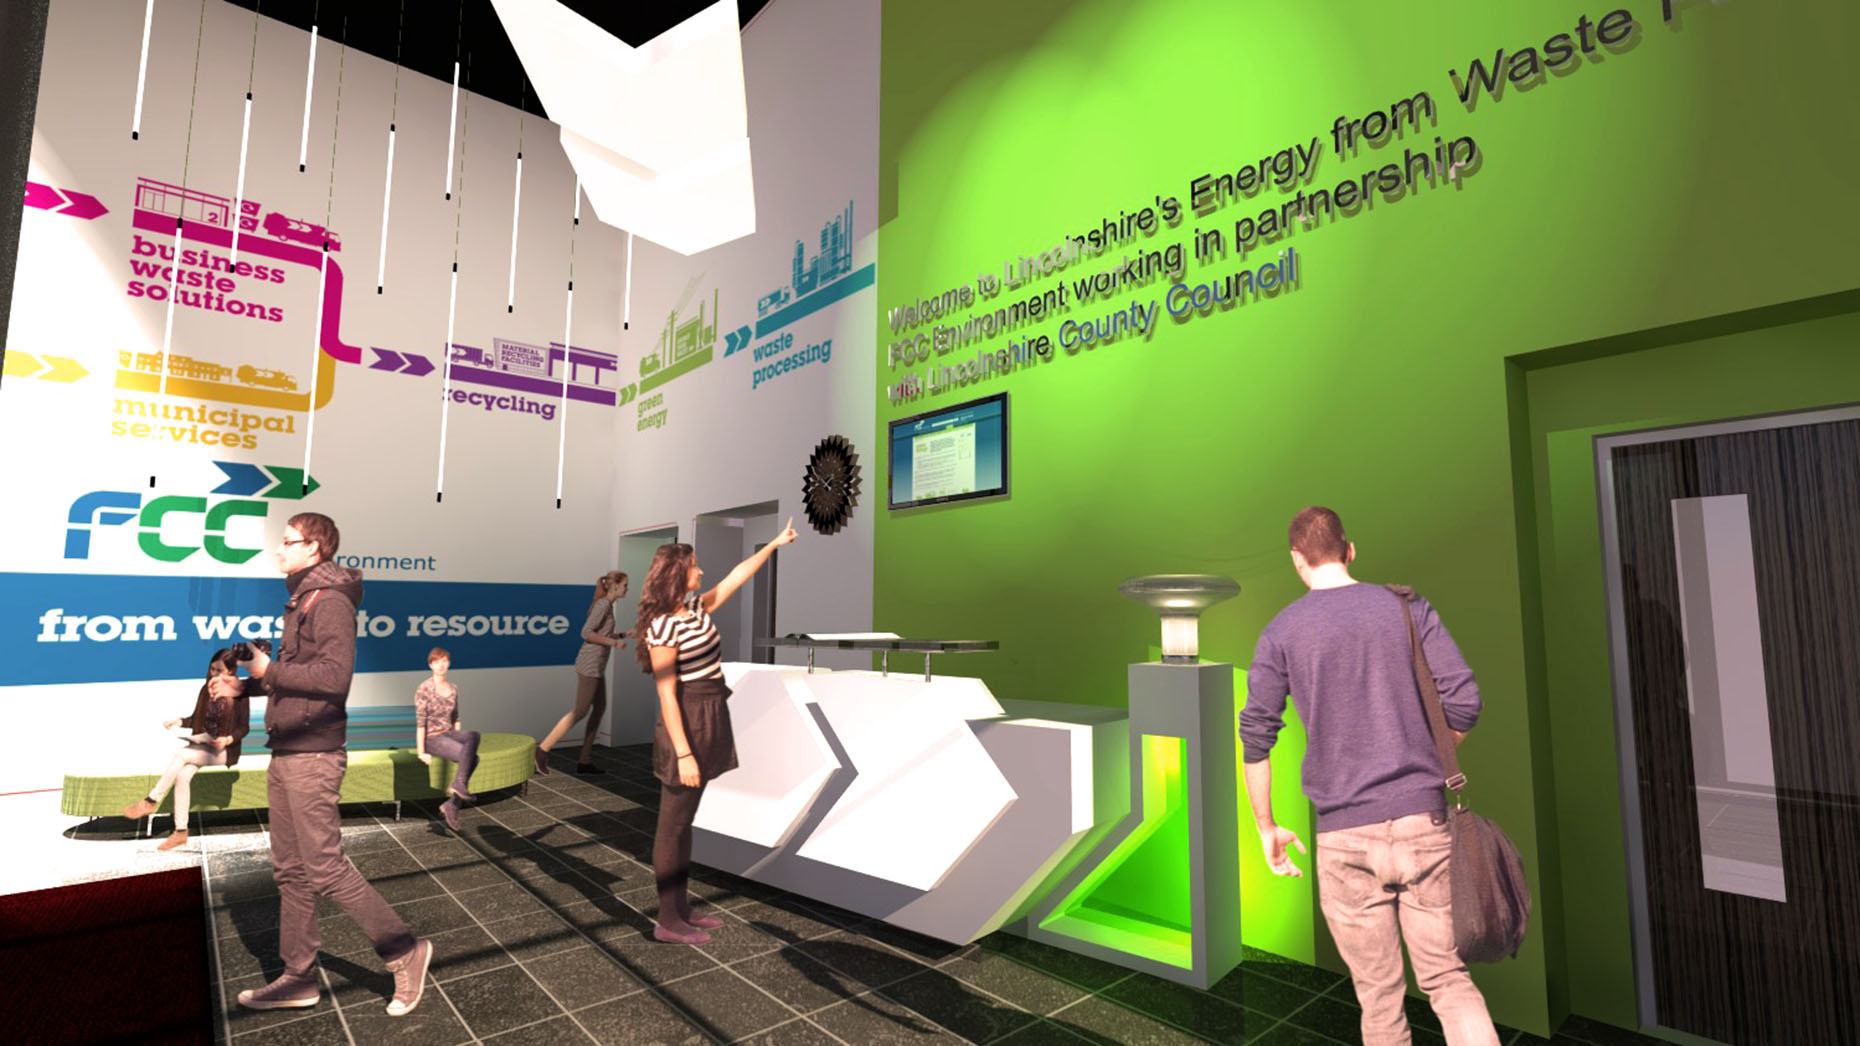 Interior designs picked for lincoln energy from waste plant for Interior design recruitment agencies birmingham